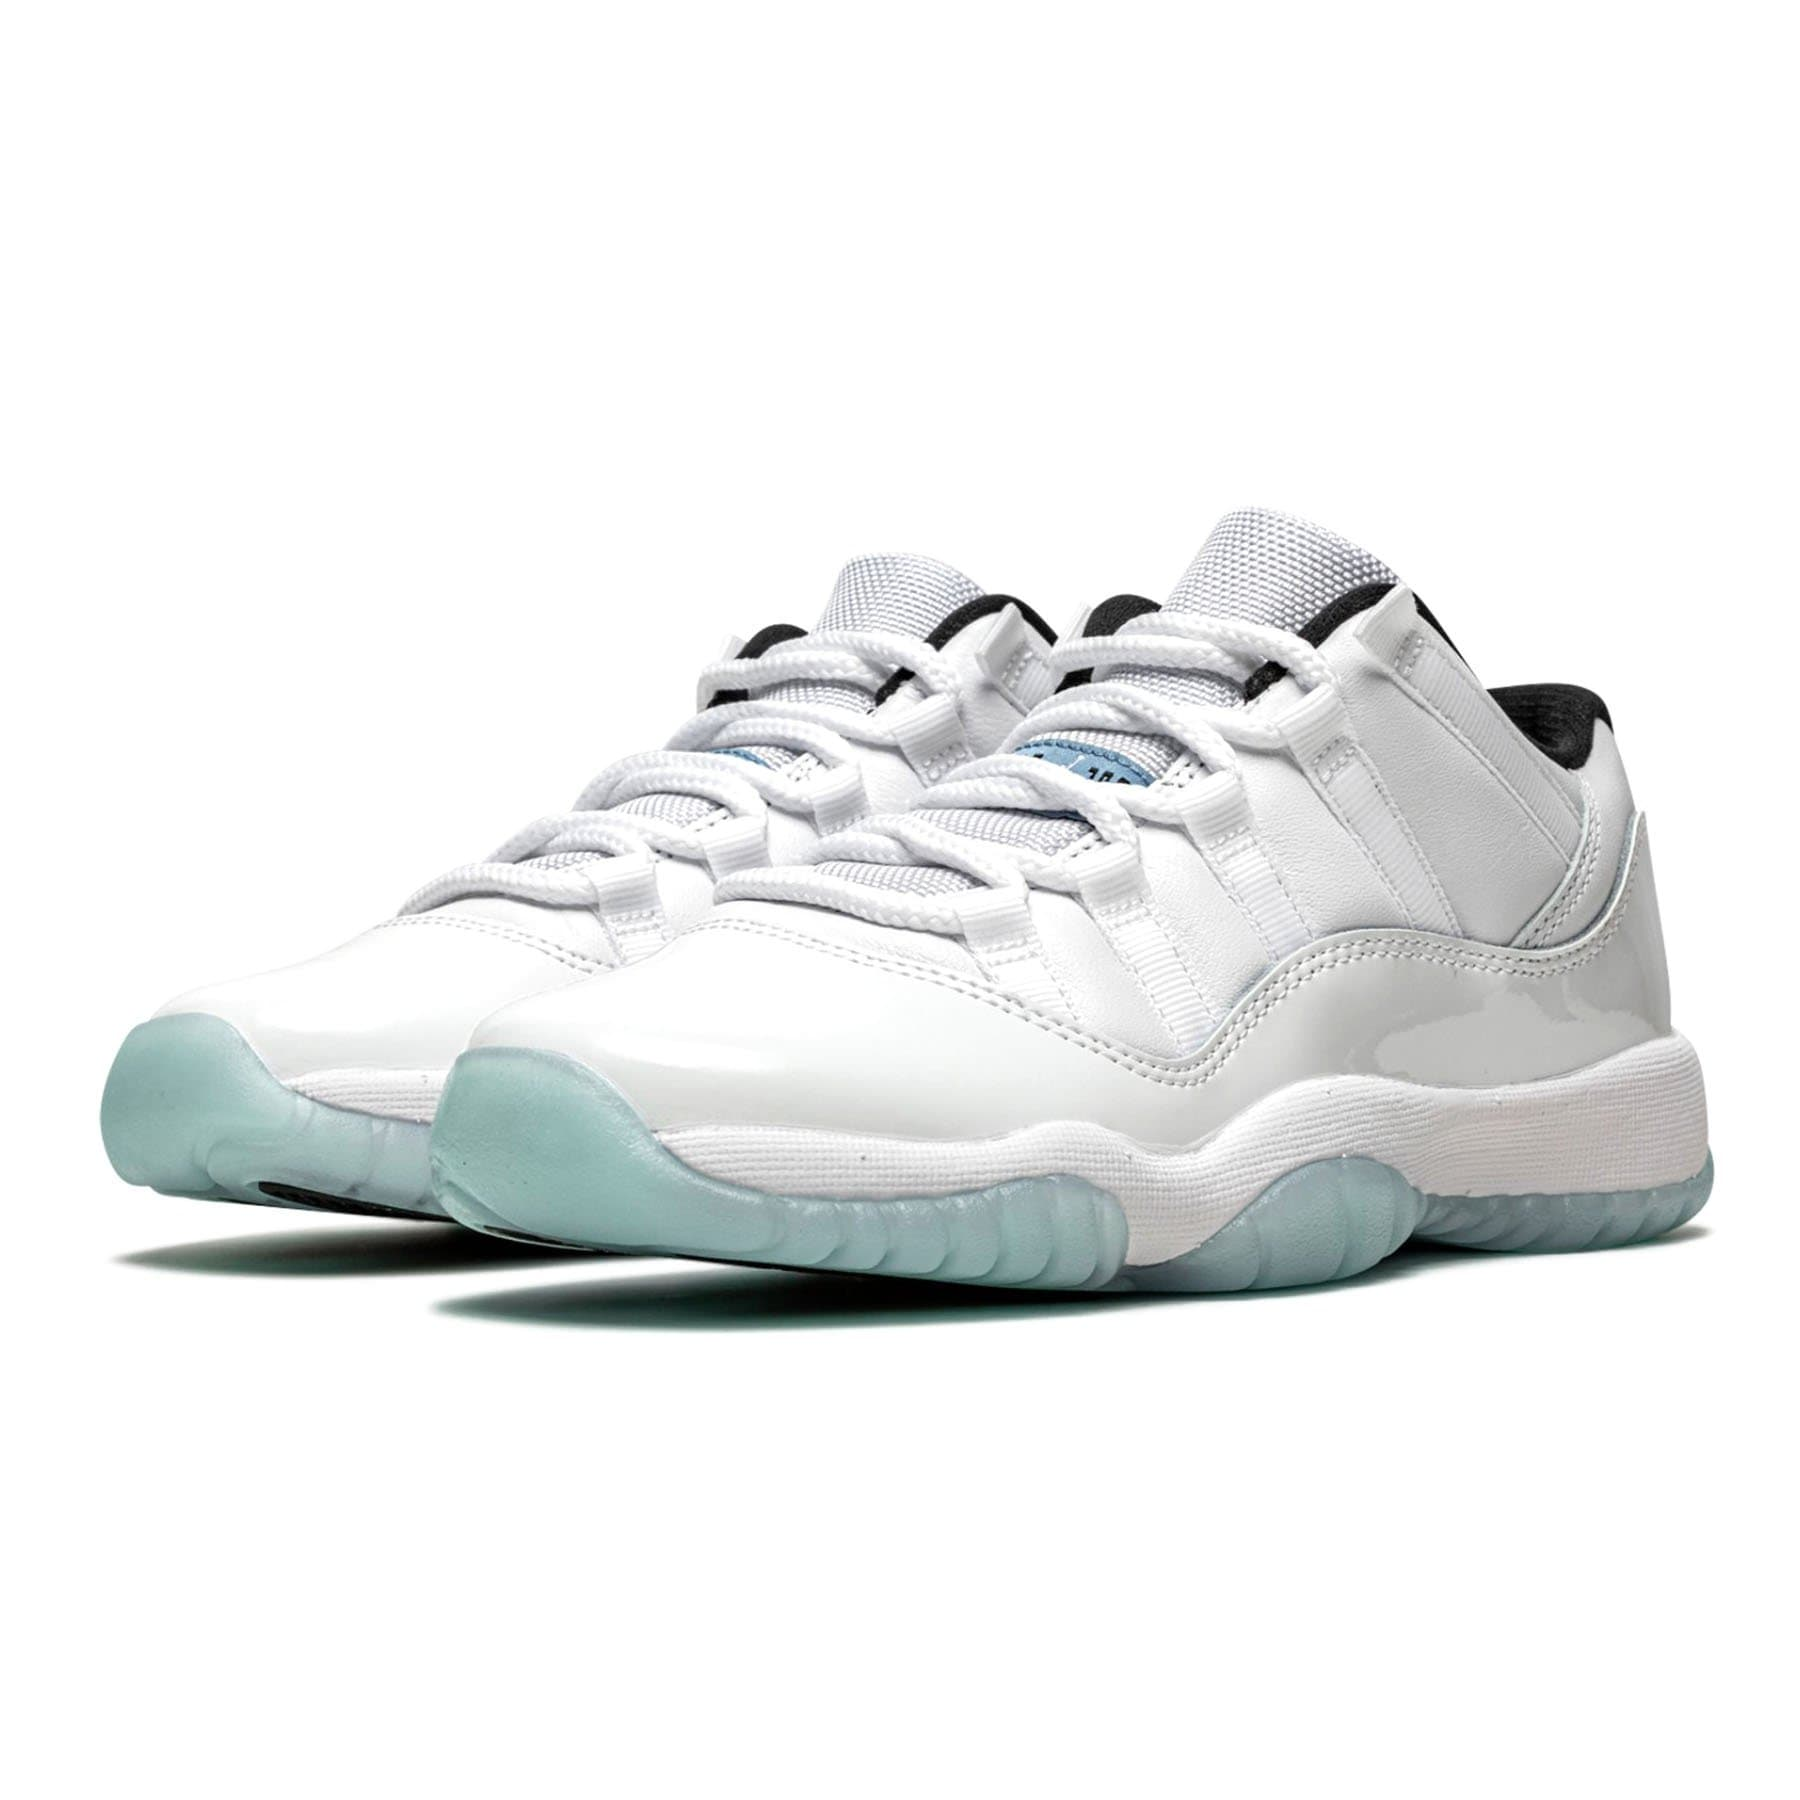 Air Jordan 11 Retro Low GS 'Legend Blue' - Kick Game